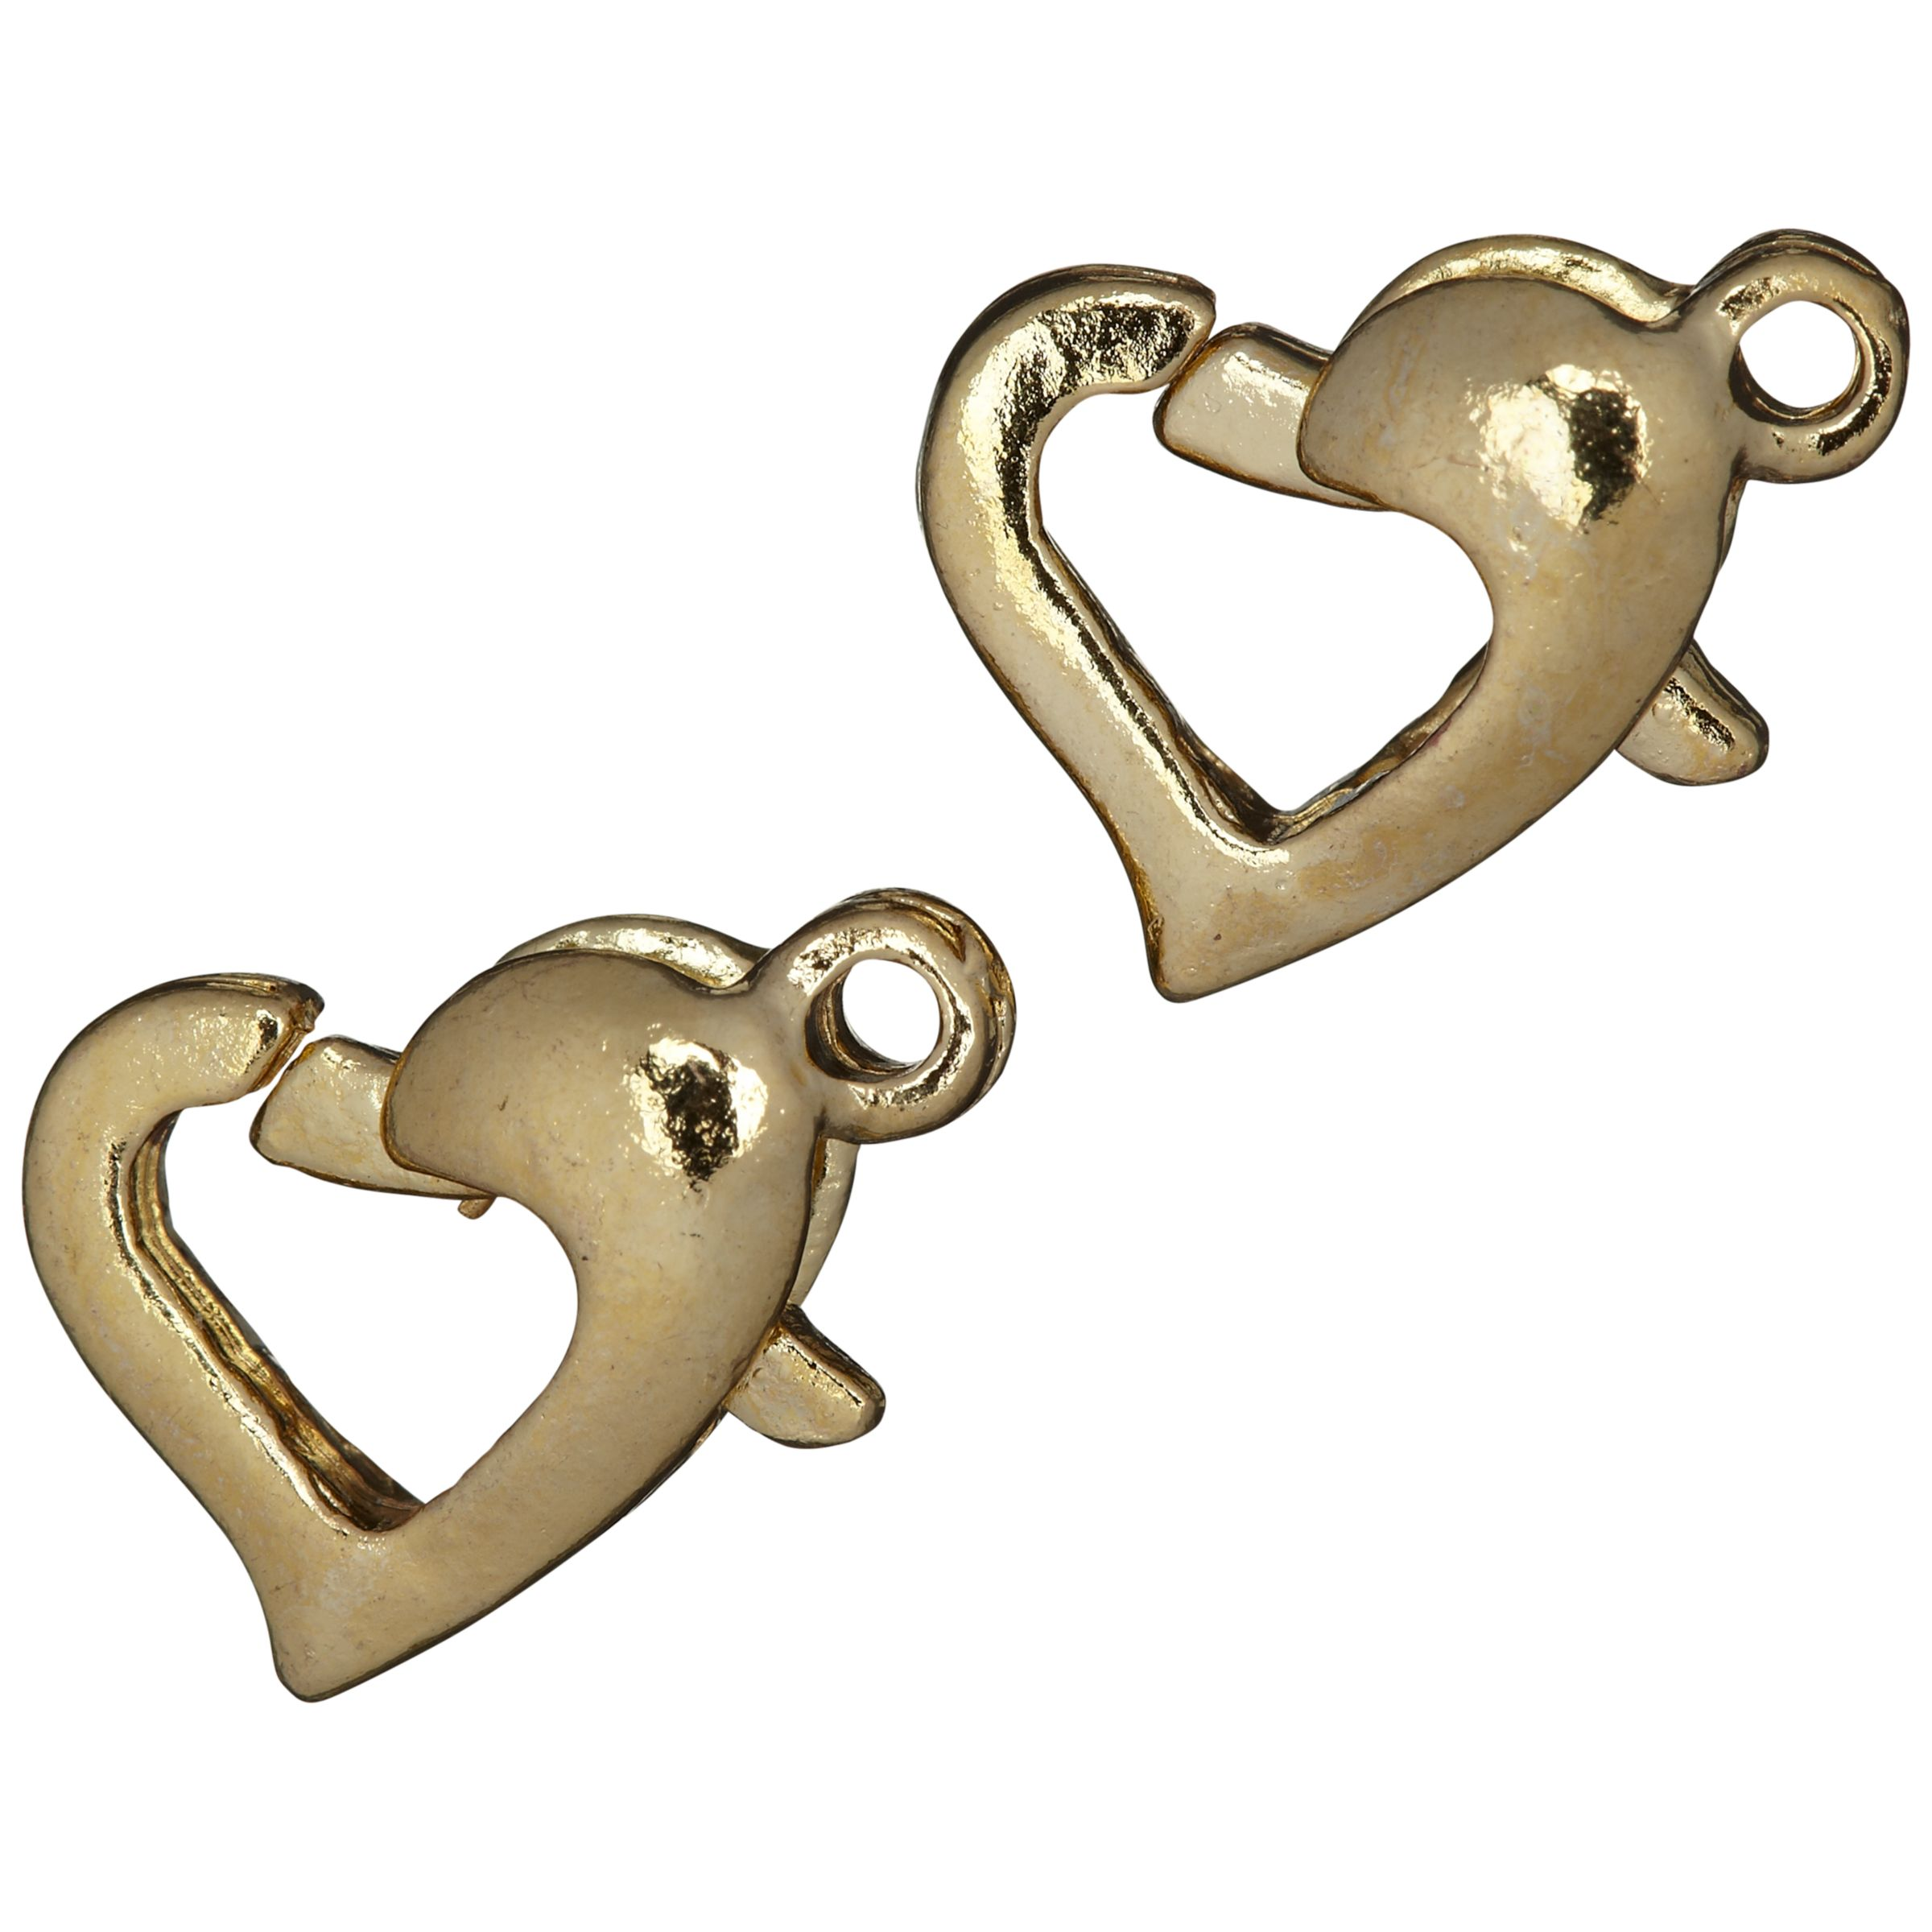 Groves A La Mode Trimits Jewellery Heart Trigger Clasps, Pack of 2, Gold Plated